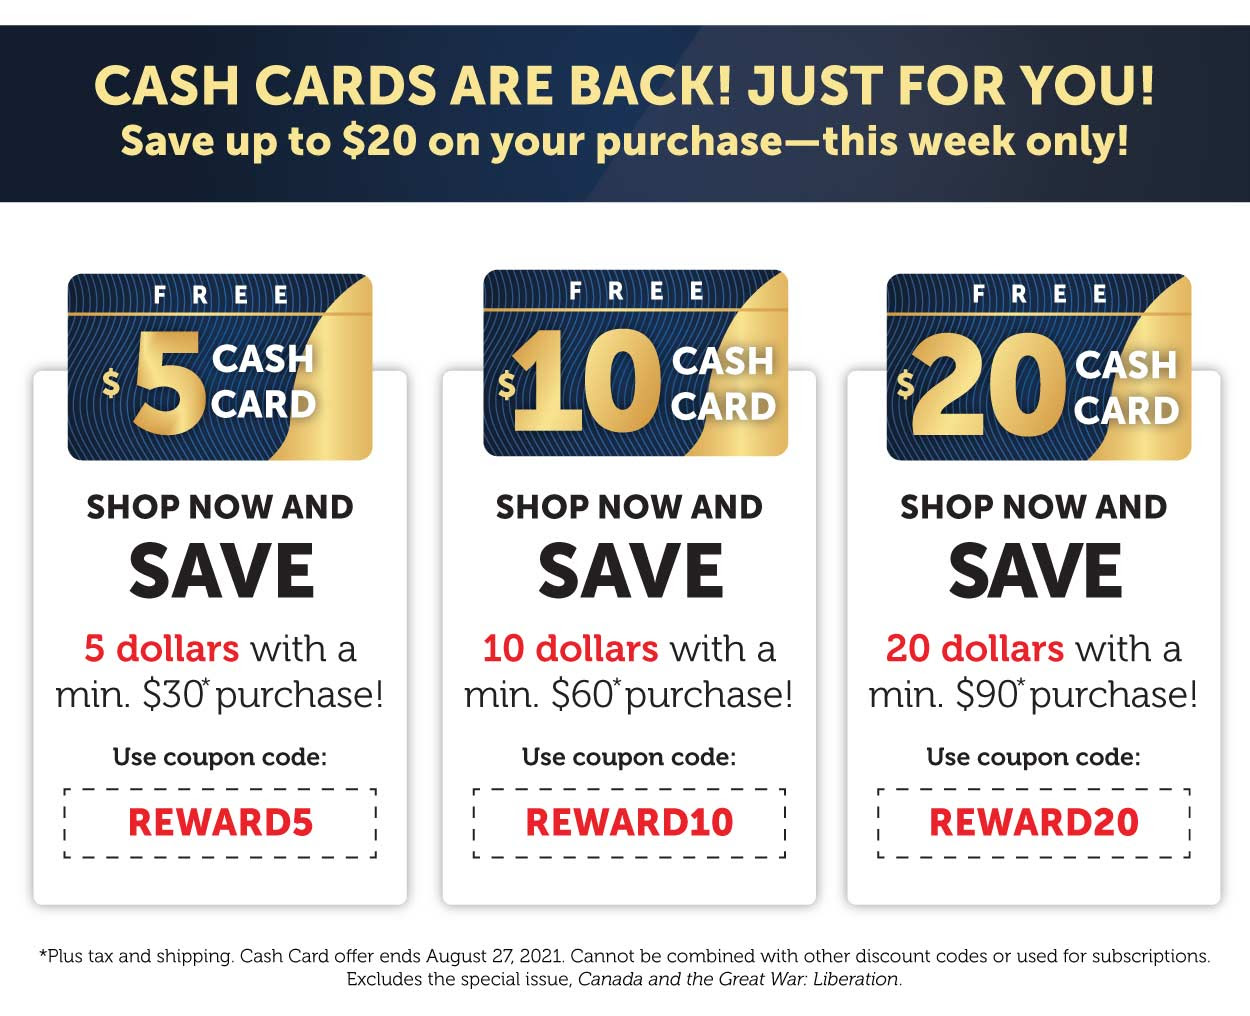 Cash Cards are back!